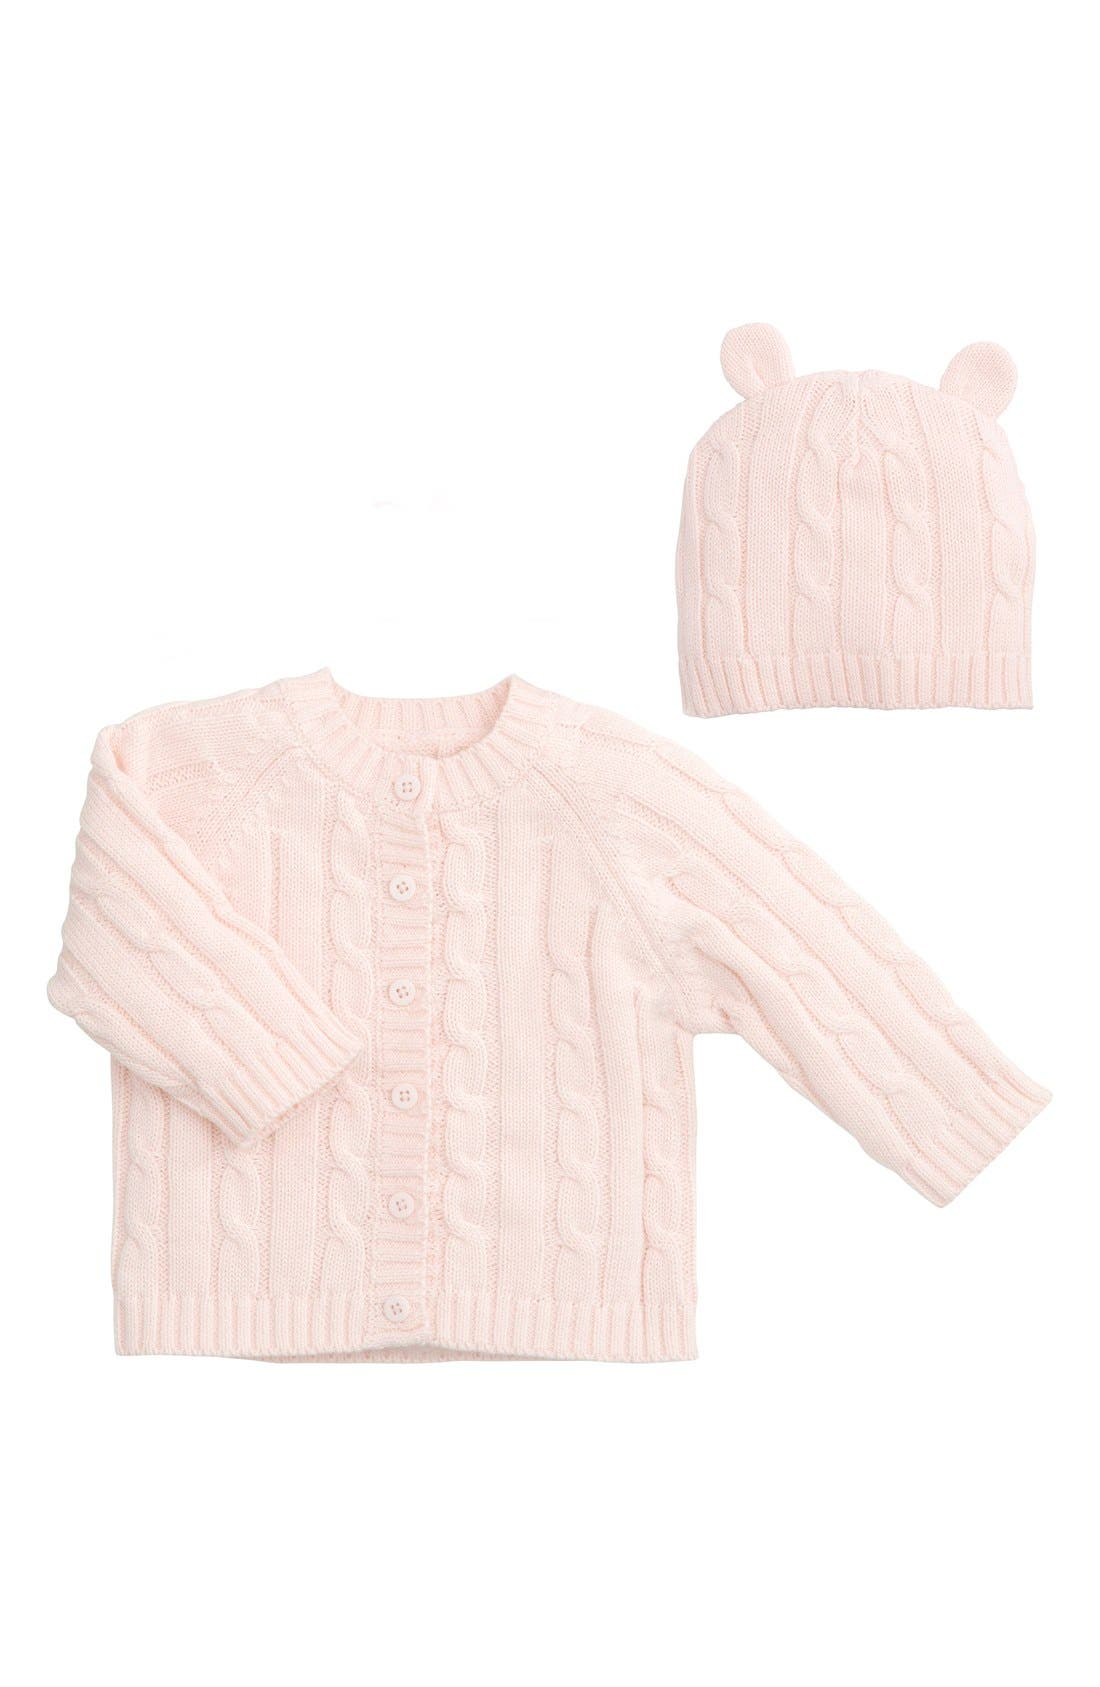 ELEGANT BABY Cable Knit Sweater & Hat Set, Main, color, LIGHT PINK